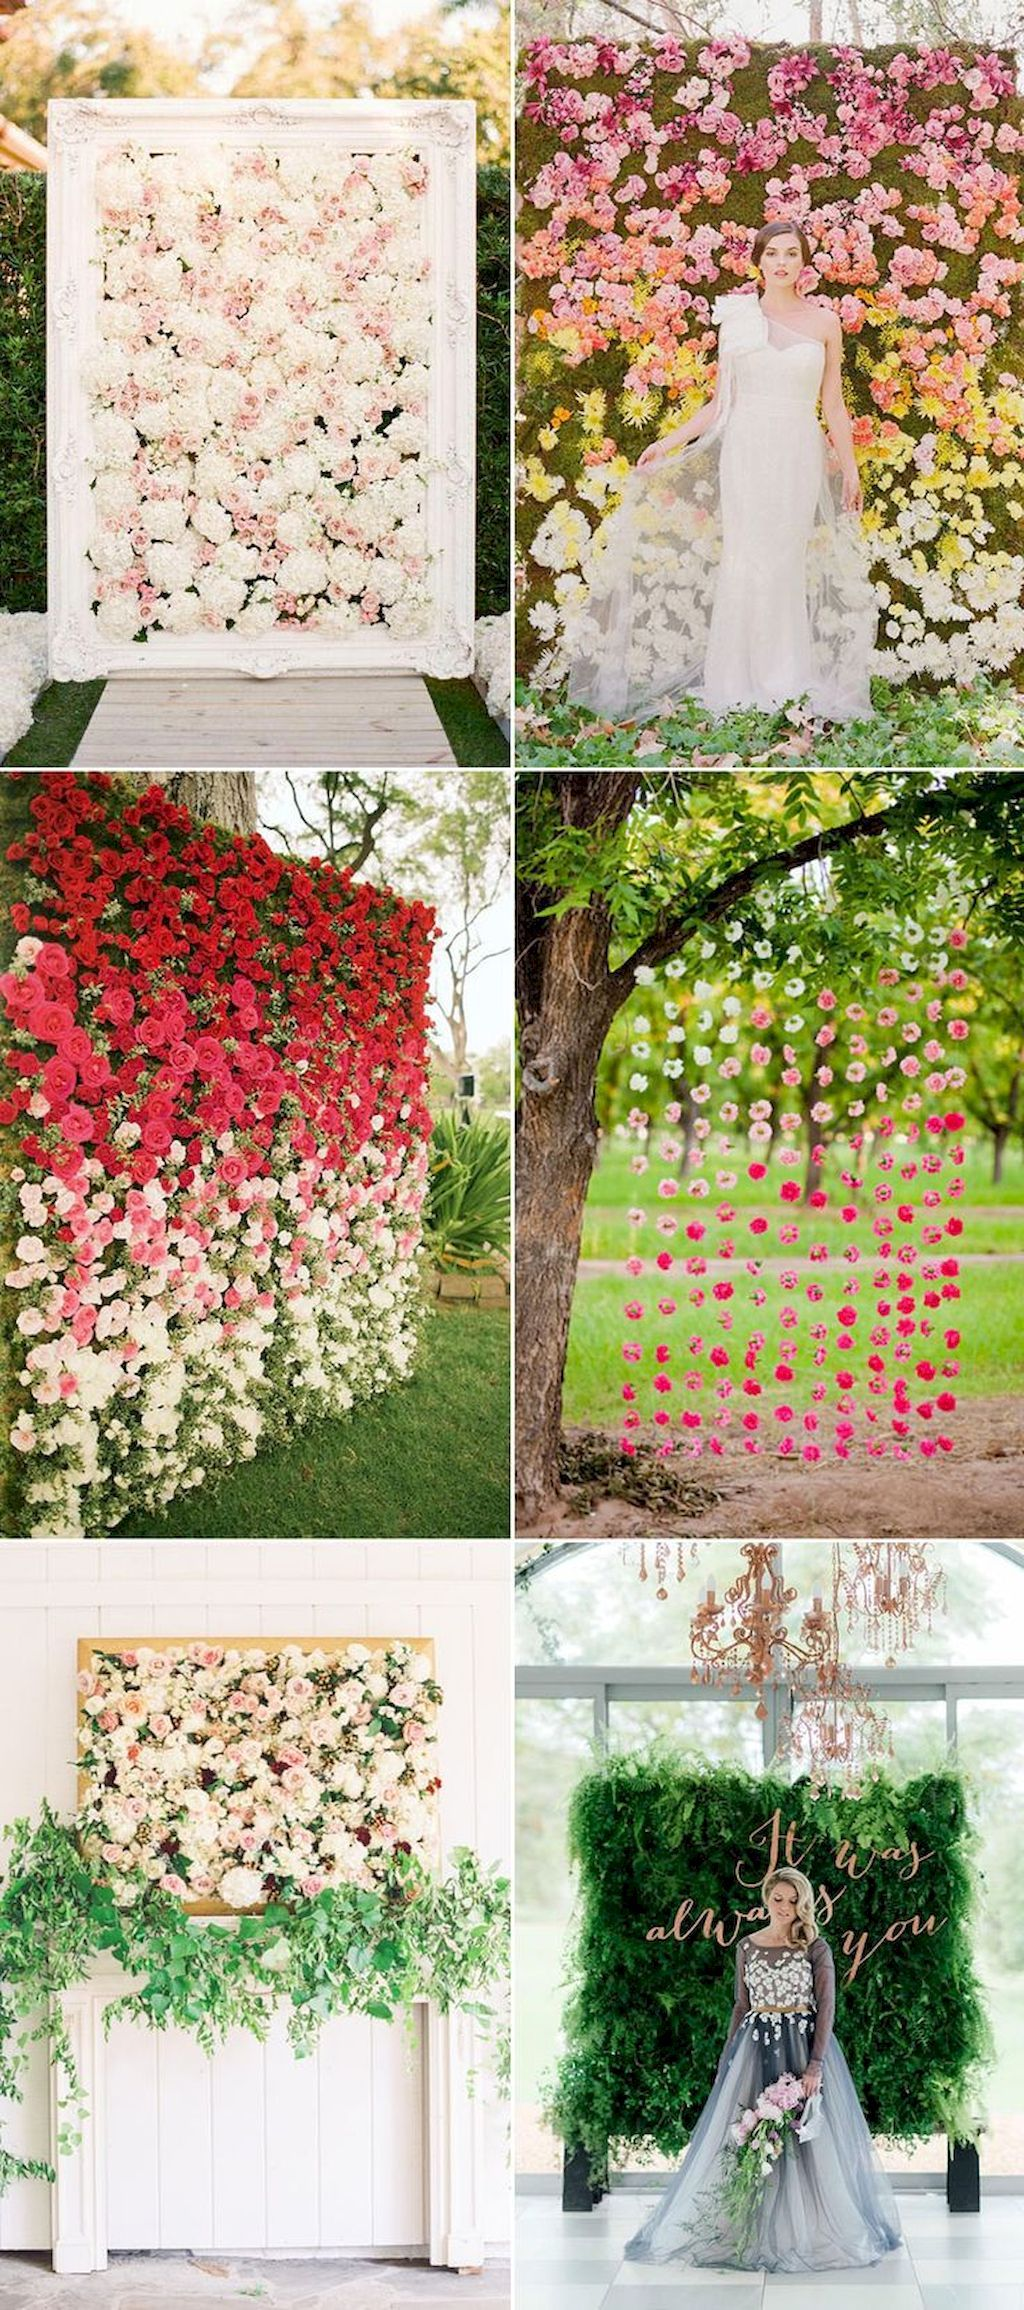 Gorgeous amazing fall outdoor wedding ideas on a budget